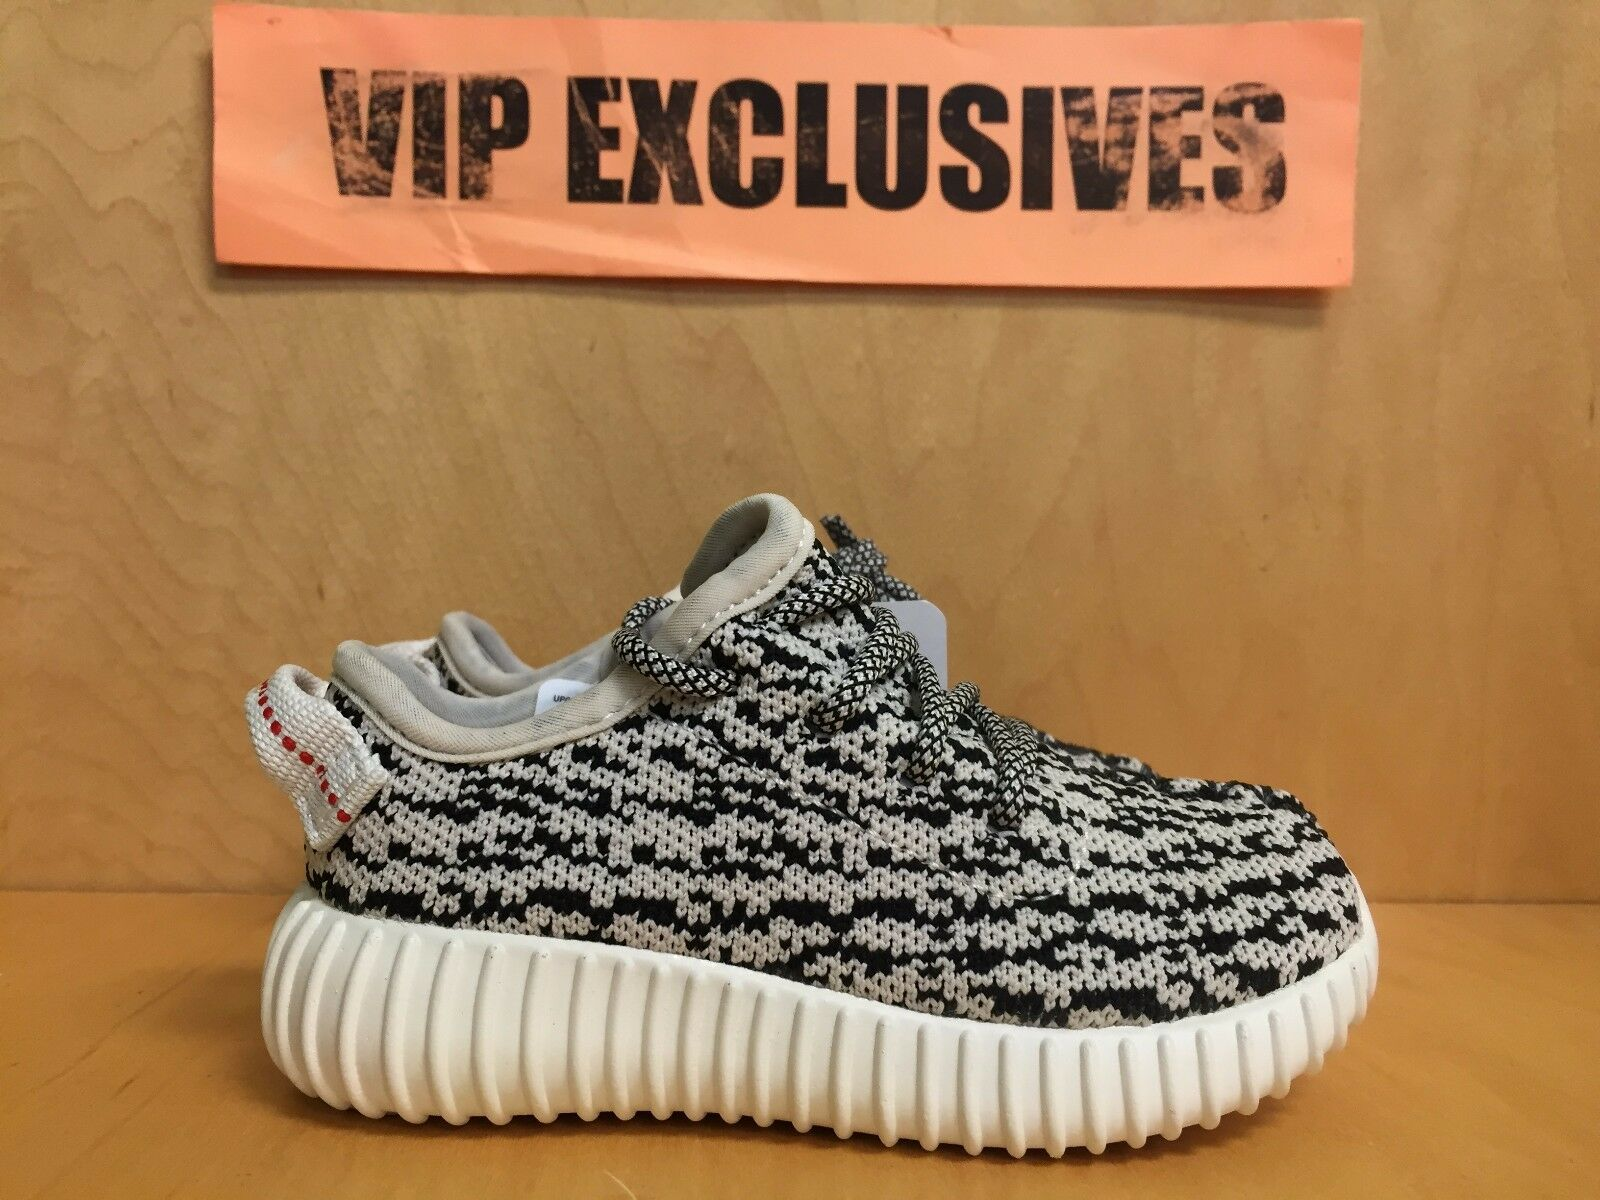 42a5e00e378 adidas Yeezy Boost 350 Infant Private Black - Bb5355 8 for sale online